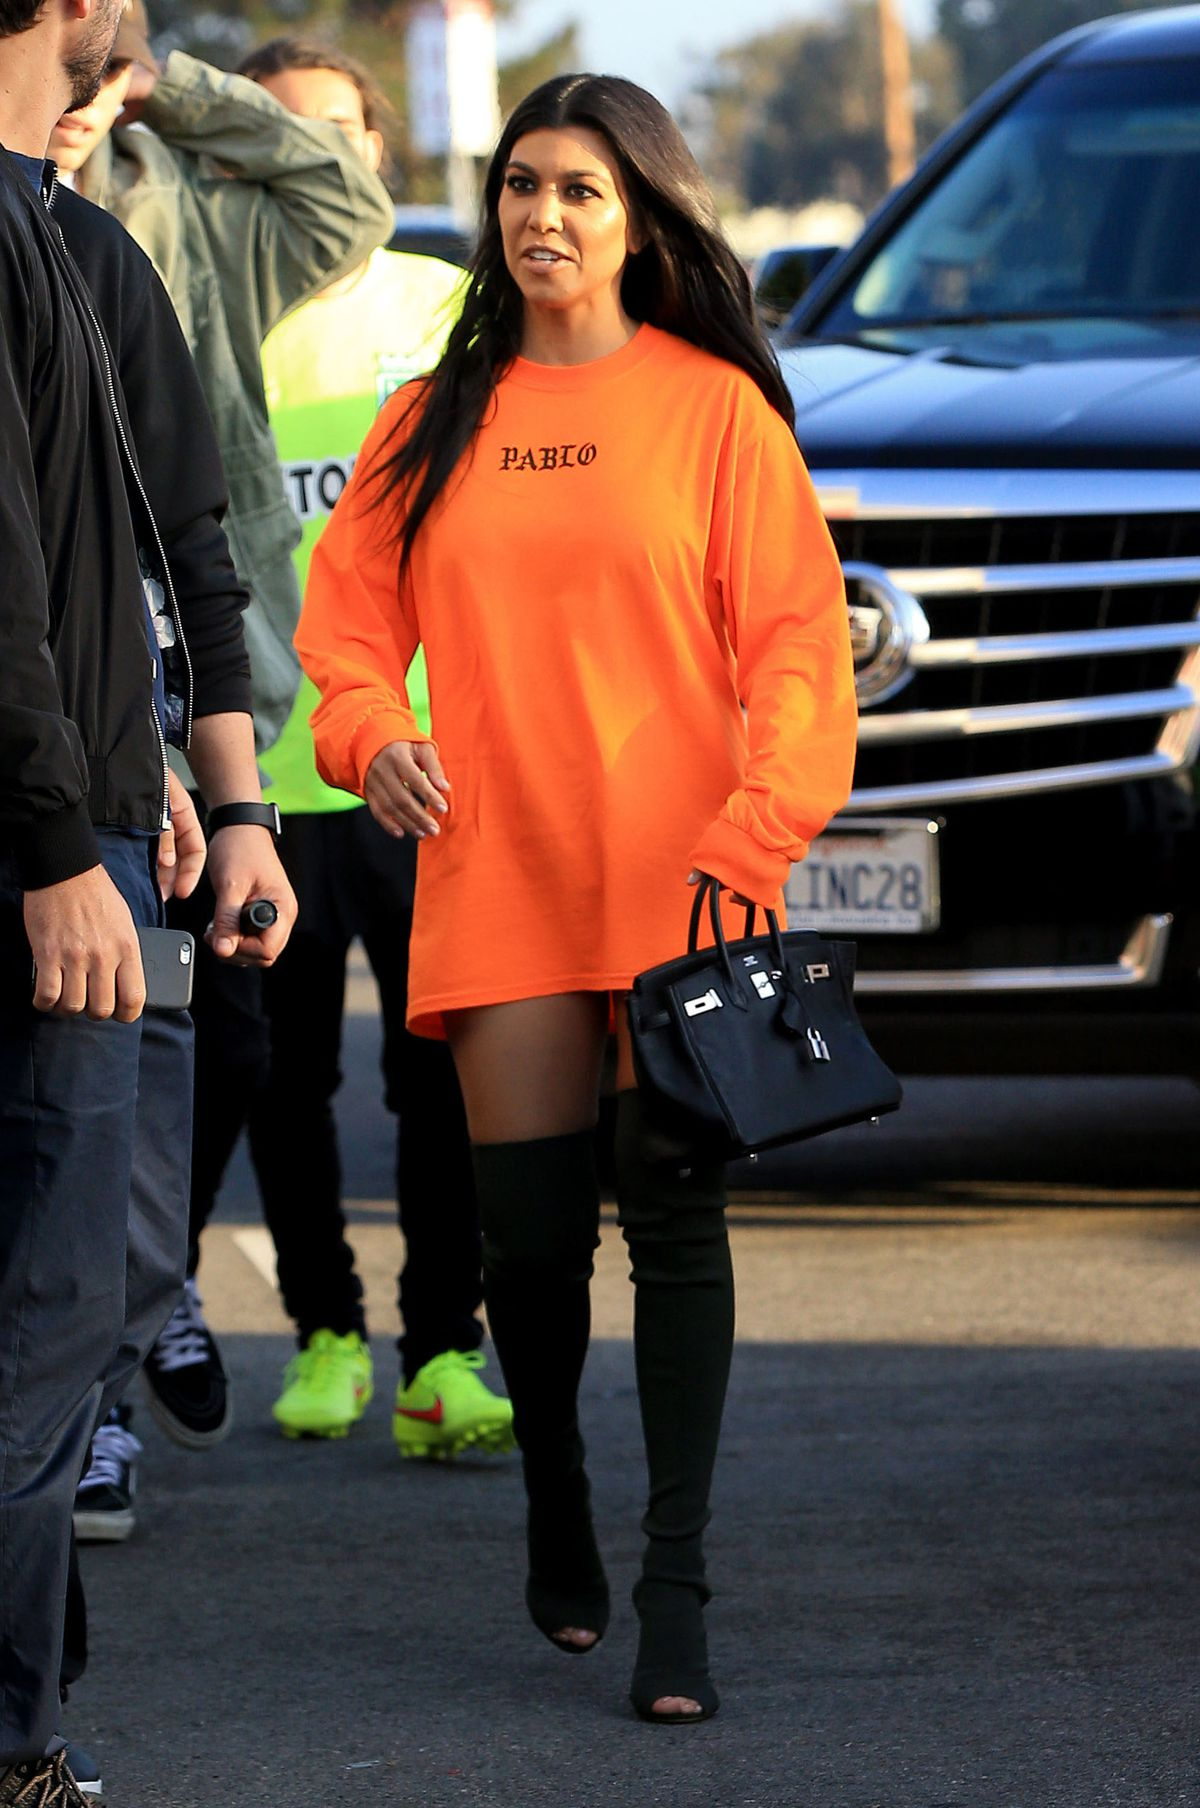 Kourtney Kardashian in a sweatshirt from Kanye West's The Life of Pablo collection.